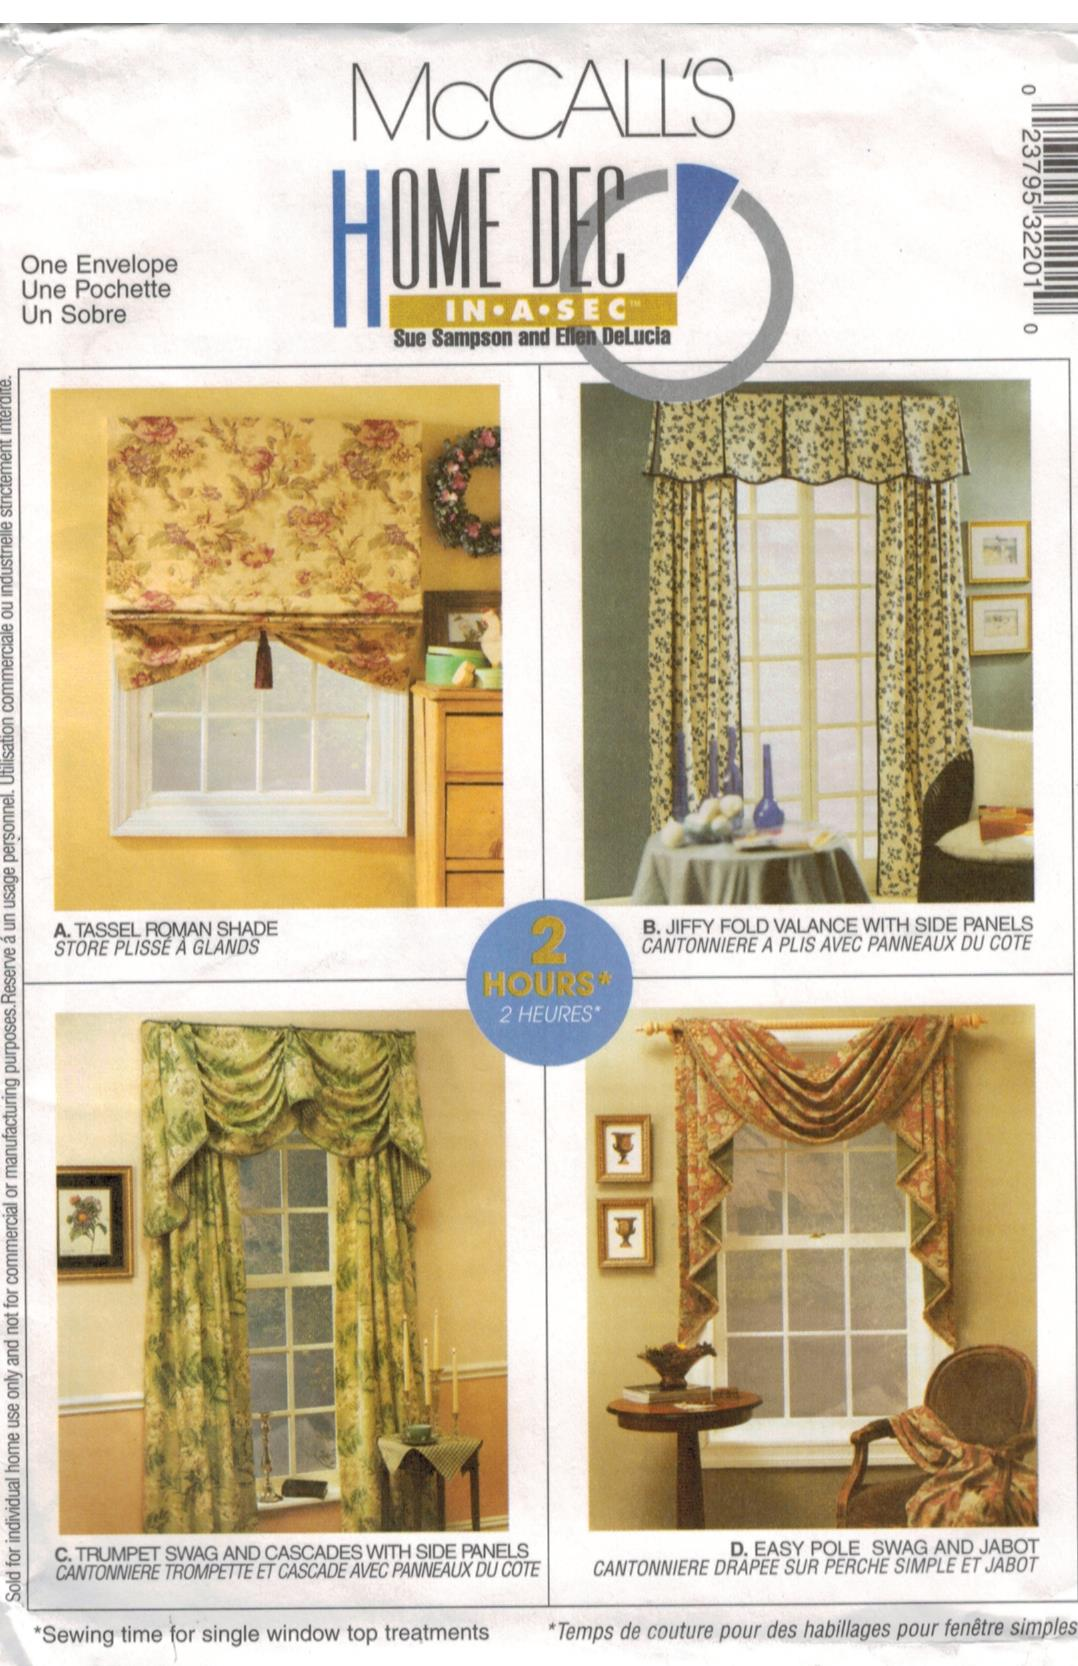 Mccalls Pattern 3220 Roman Shade Valance Side Panel Curtains Jabot And Swags Easy Window Treatments Home Dec Sewing Pattern Heaven